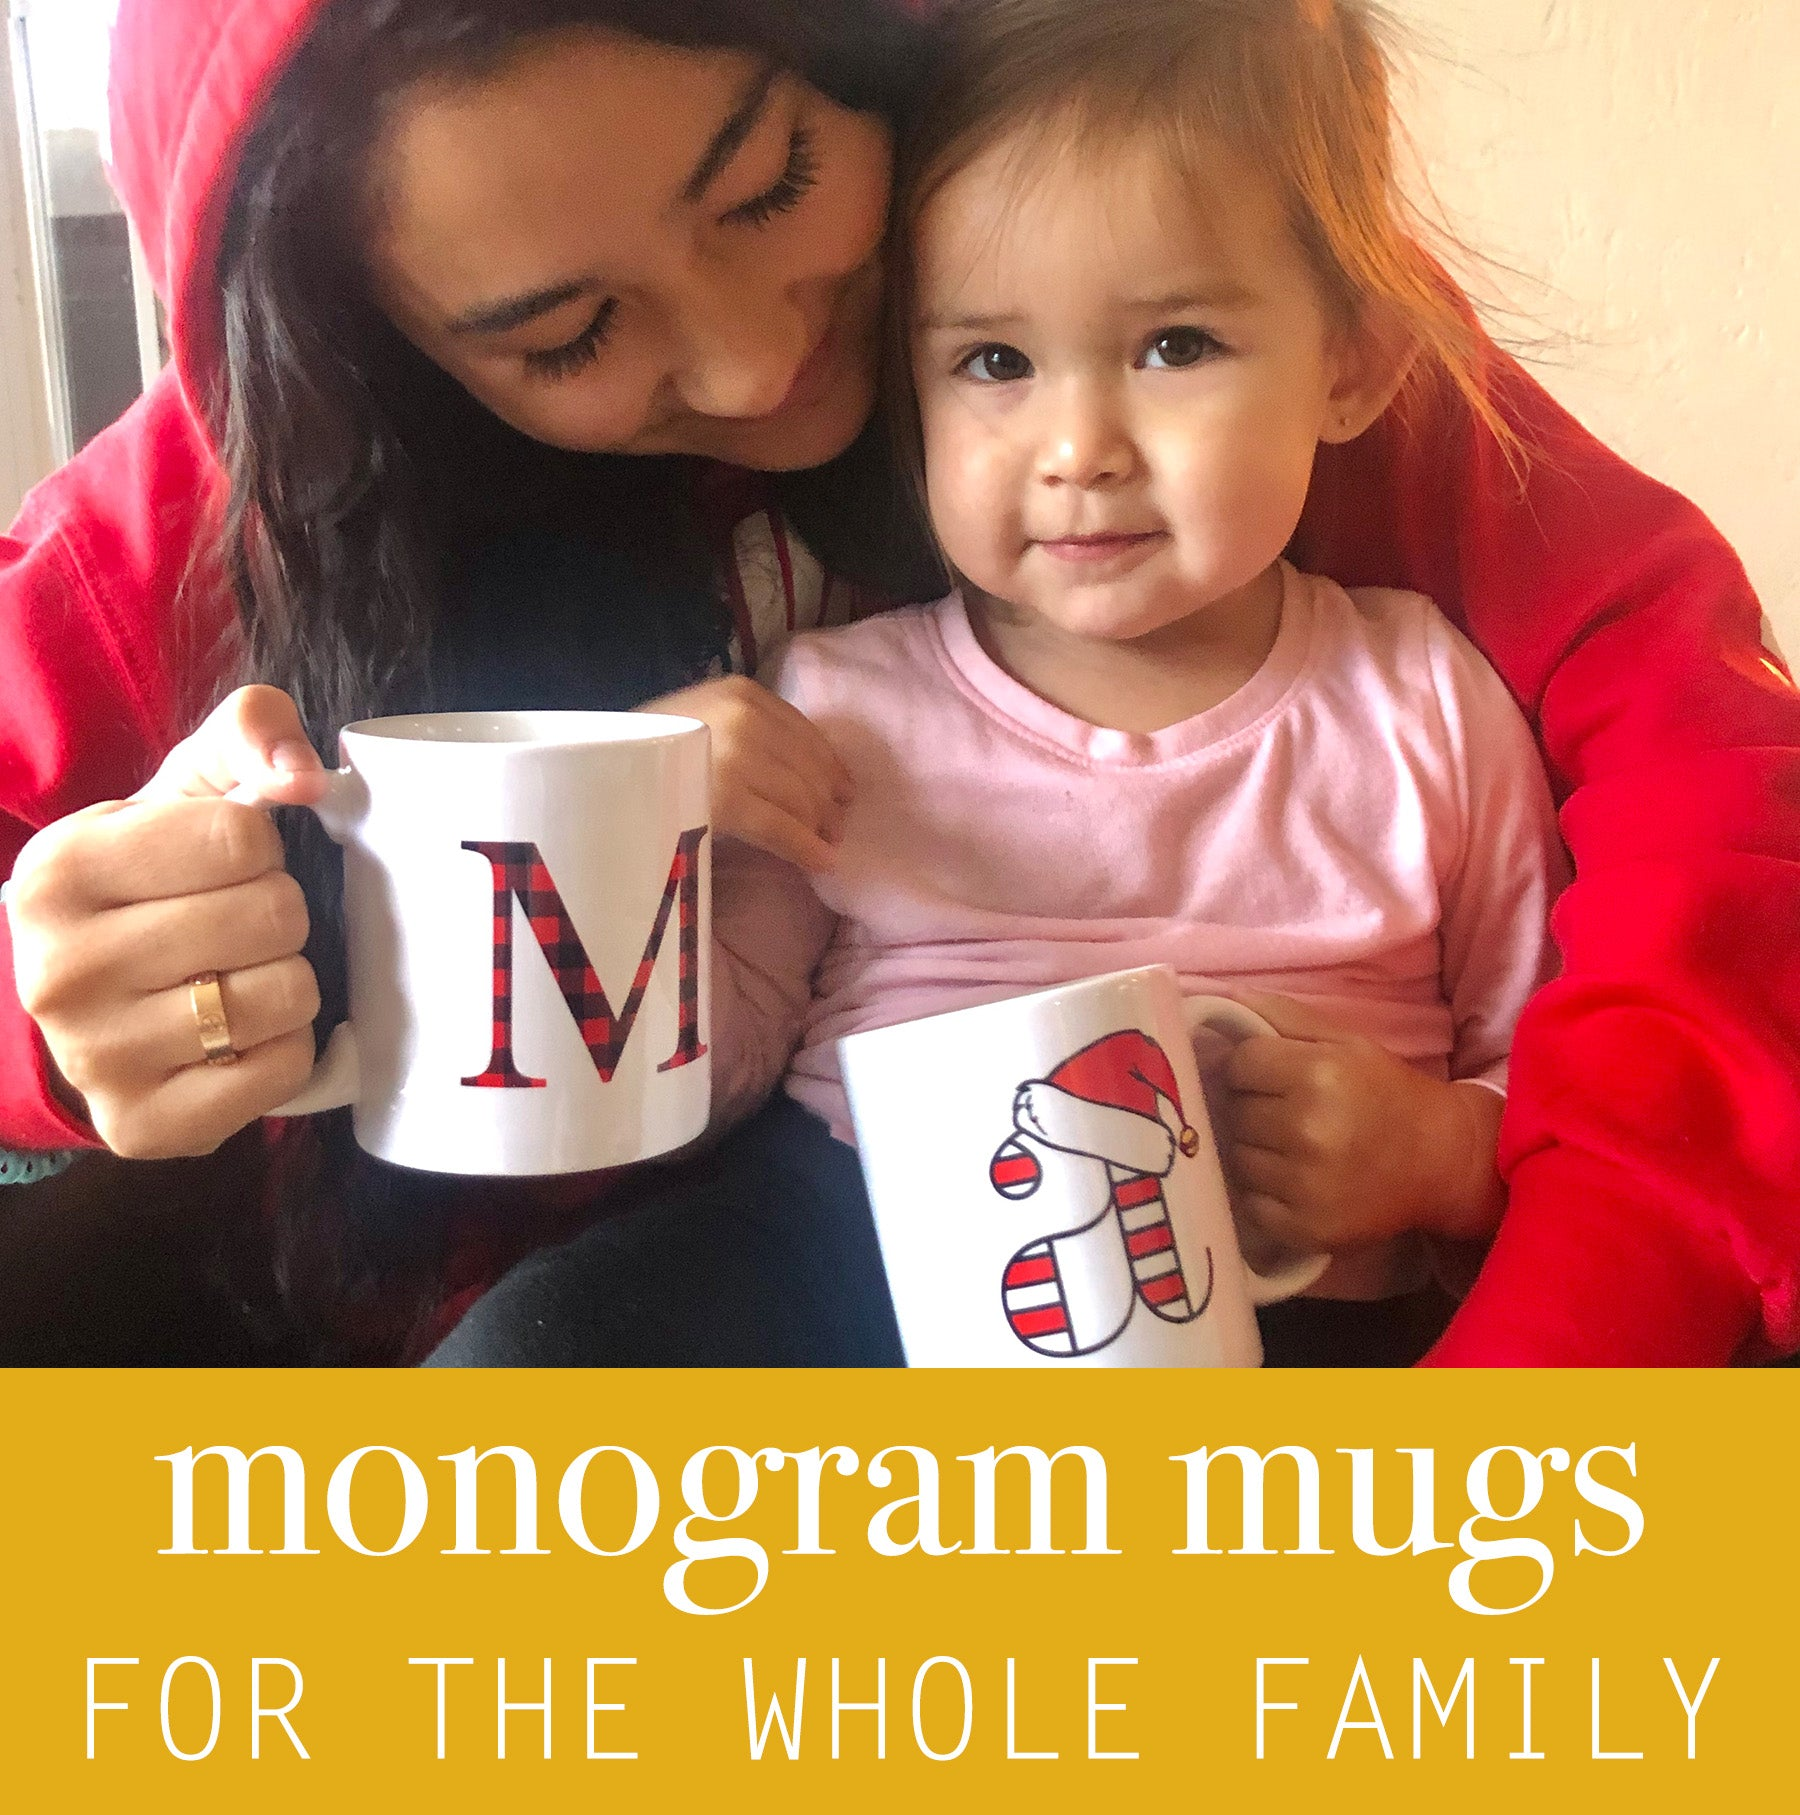 Monogram Mugs - Christmas Mugs - Holiday Mugs - Letter Mug - Pretty Collected